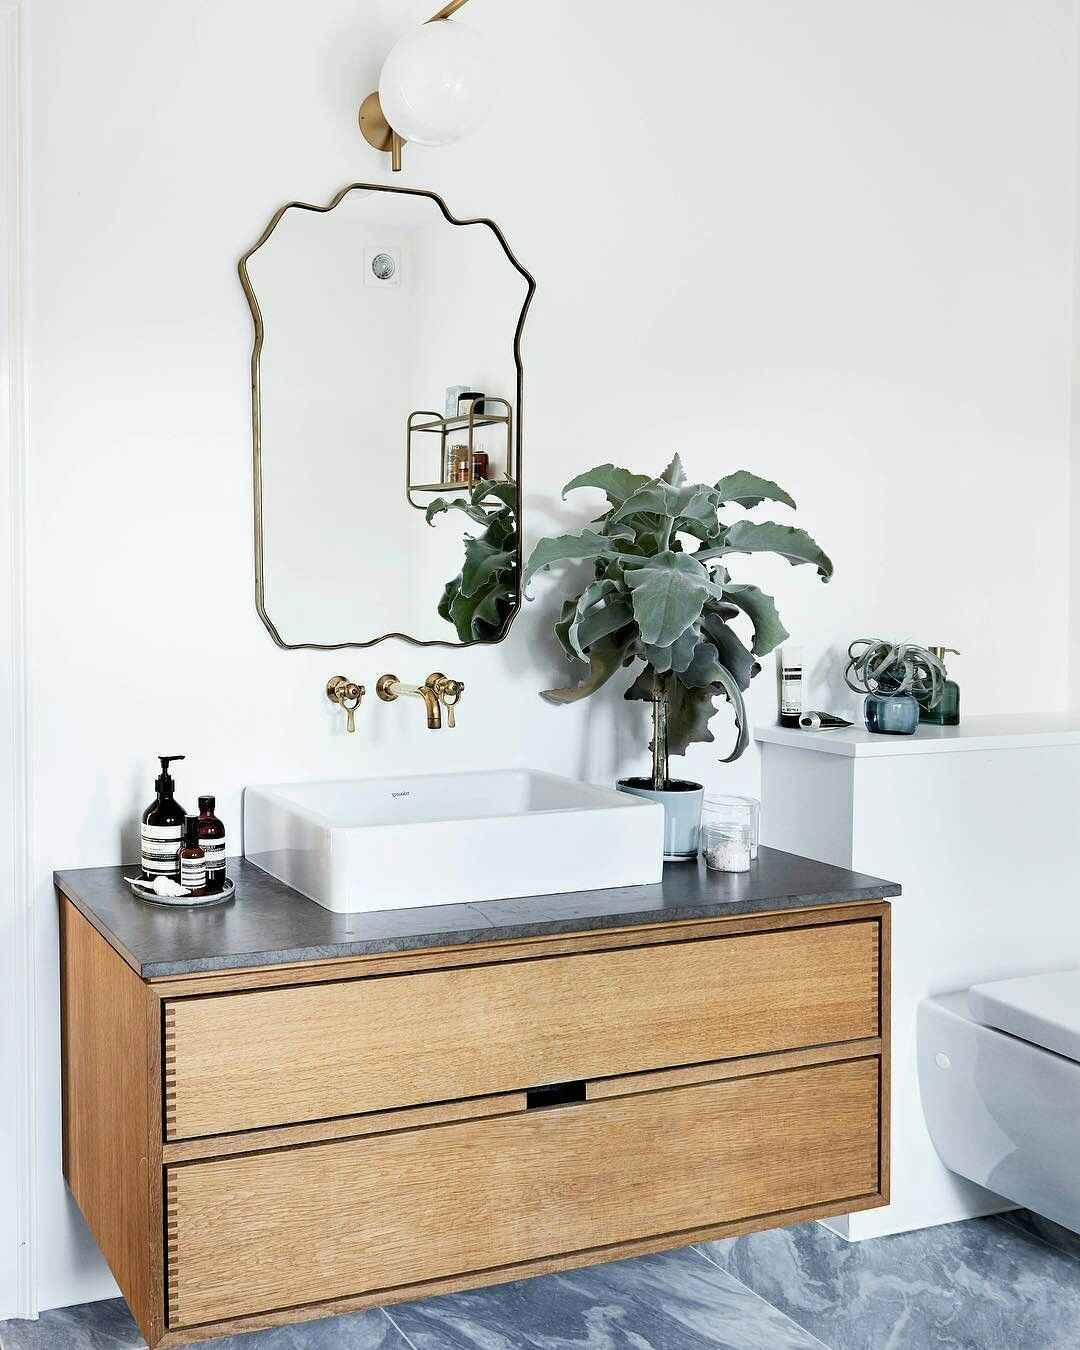 Garde Hvalsoe Bathroom Furniture Massive Oak And Finger Joints Amazing Design Badezimmer Einrichtung Design